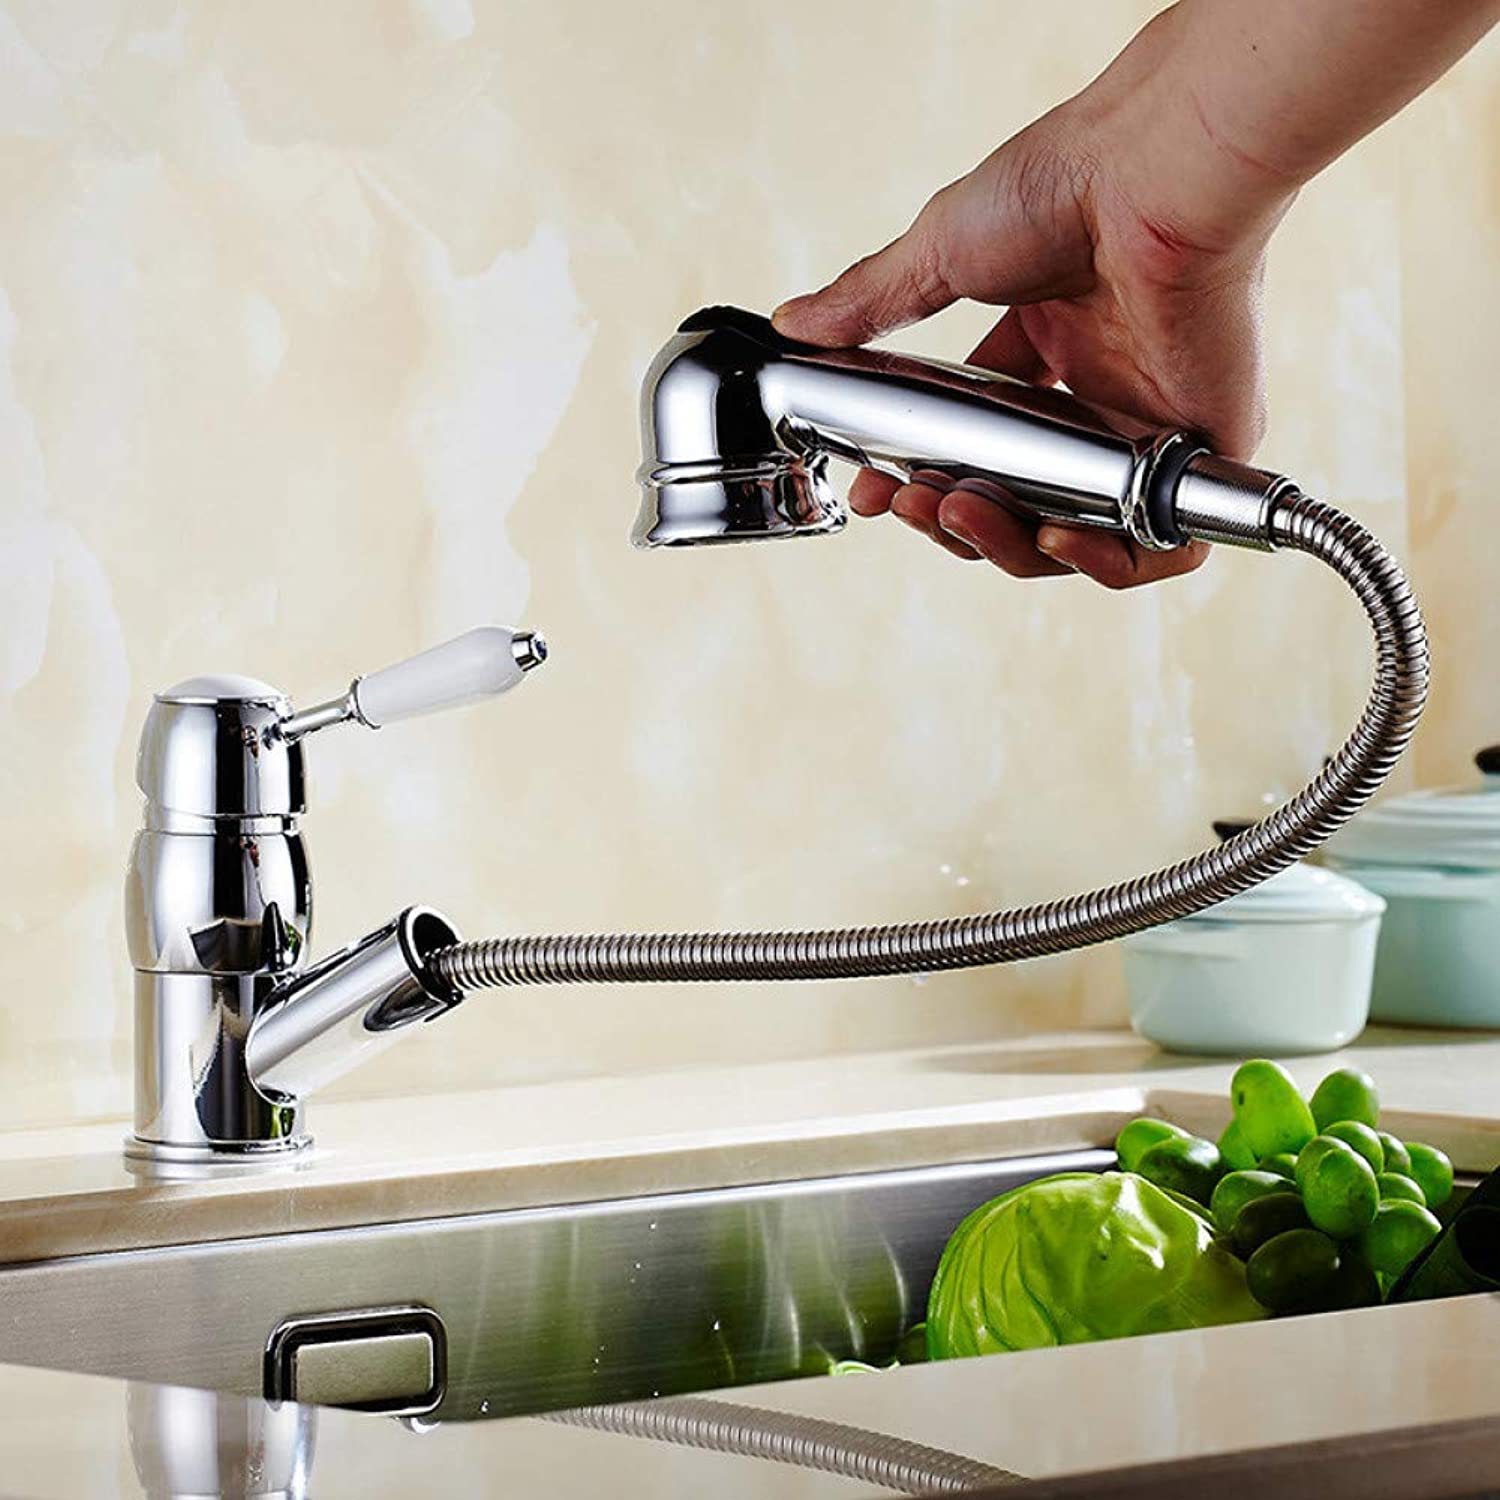 SUHANG Faucet Chrome Brass Pull Out Kitchen Faucet Kitchen Mixer Hot and Cold Kitchen Sink Tap